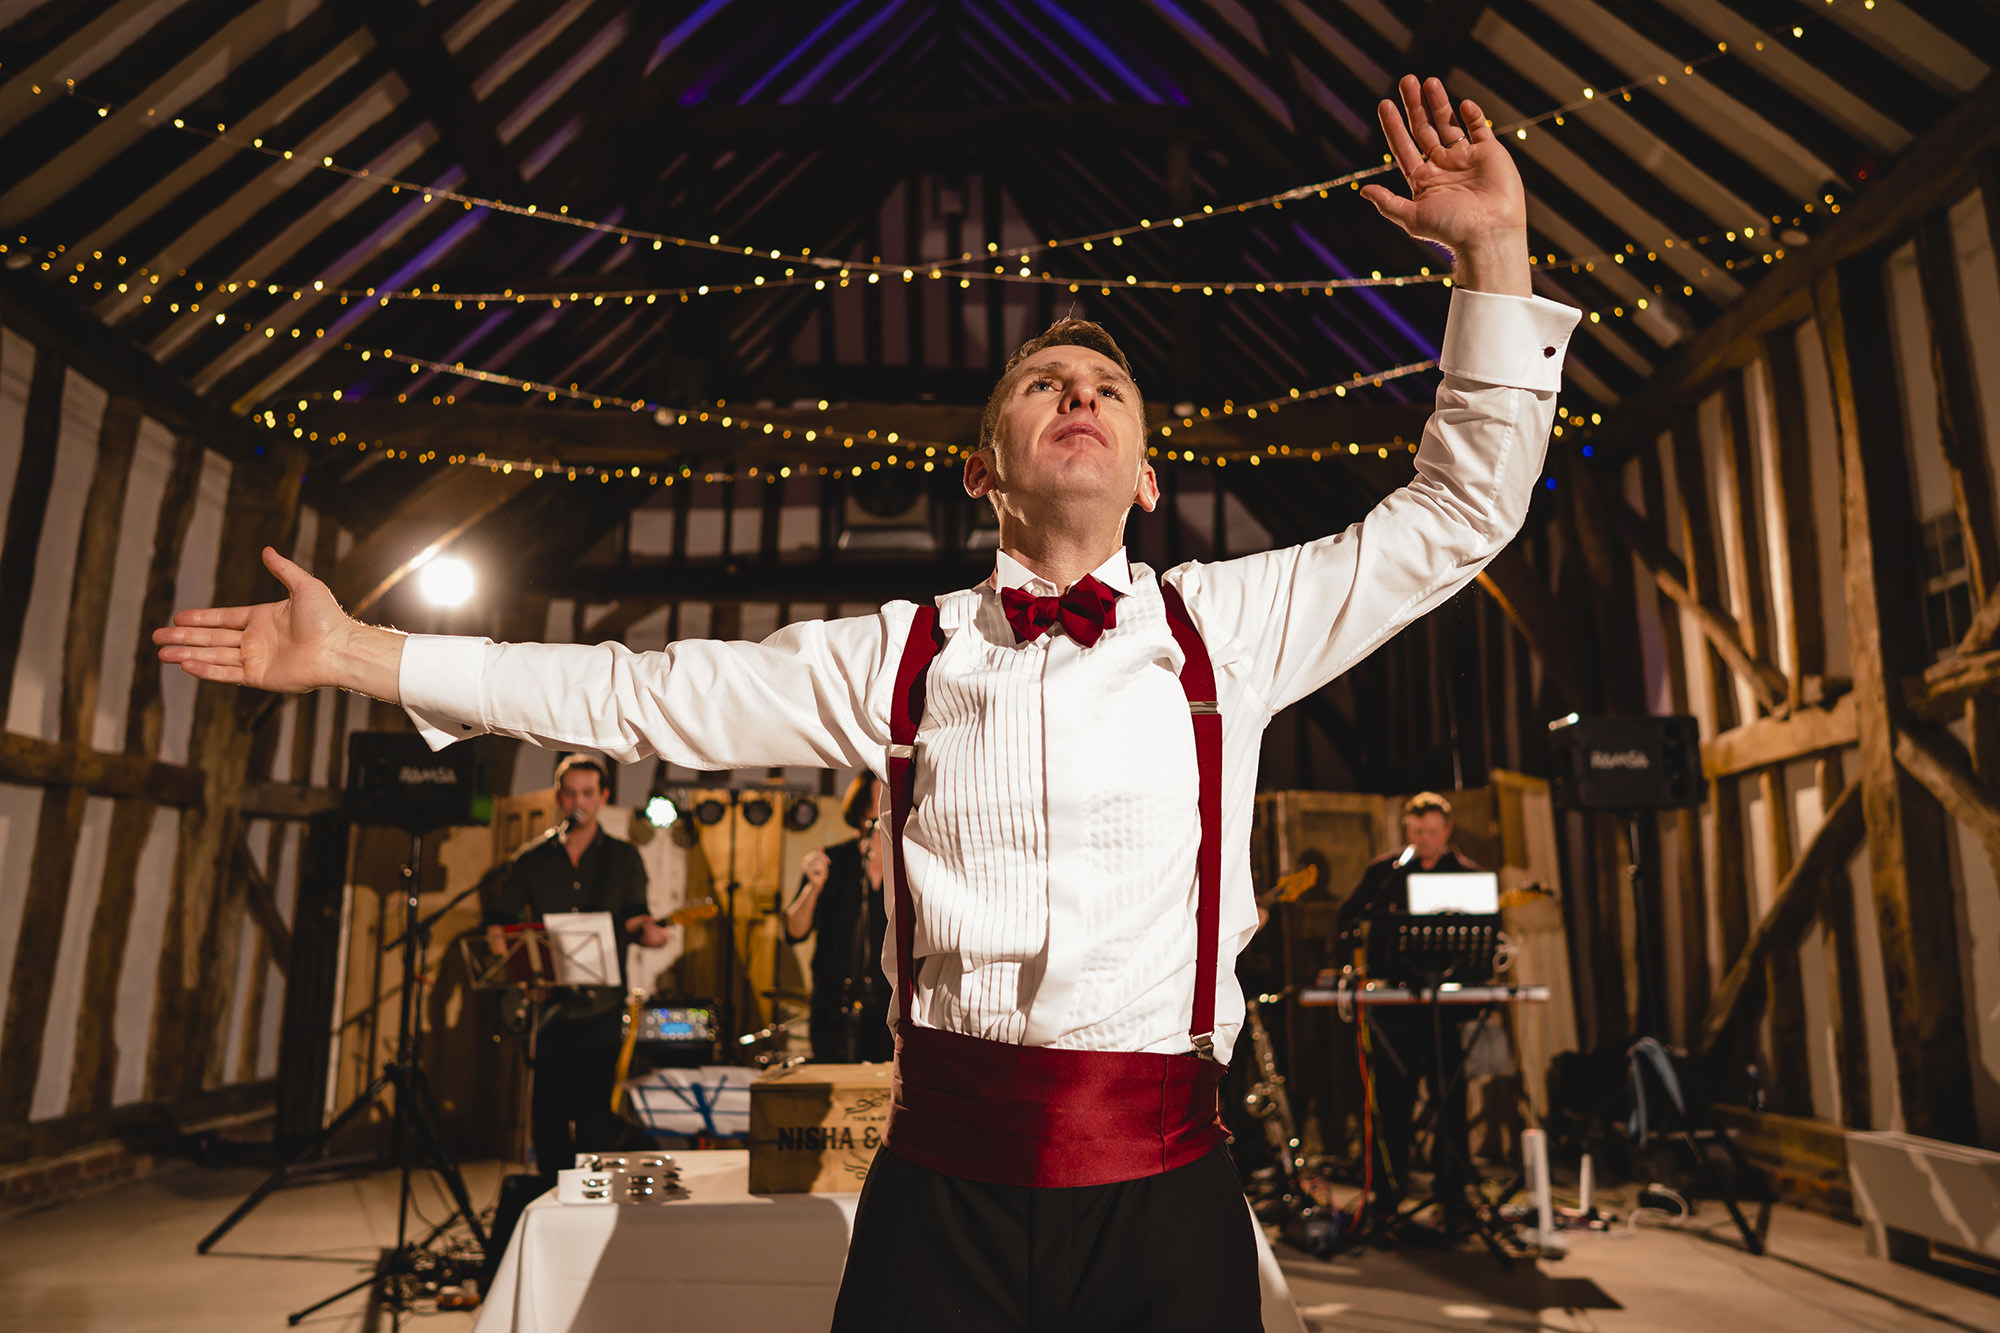 groom dancing at wedding reception the great barn